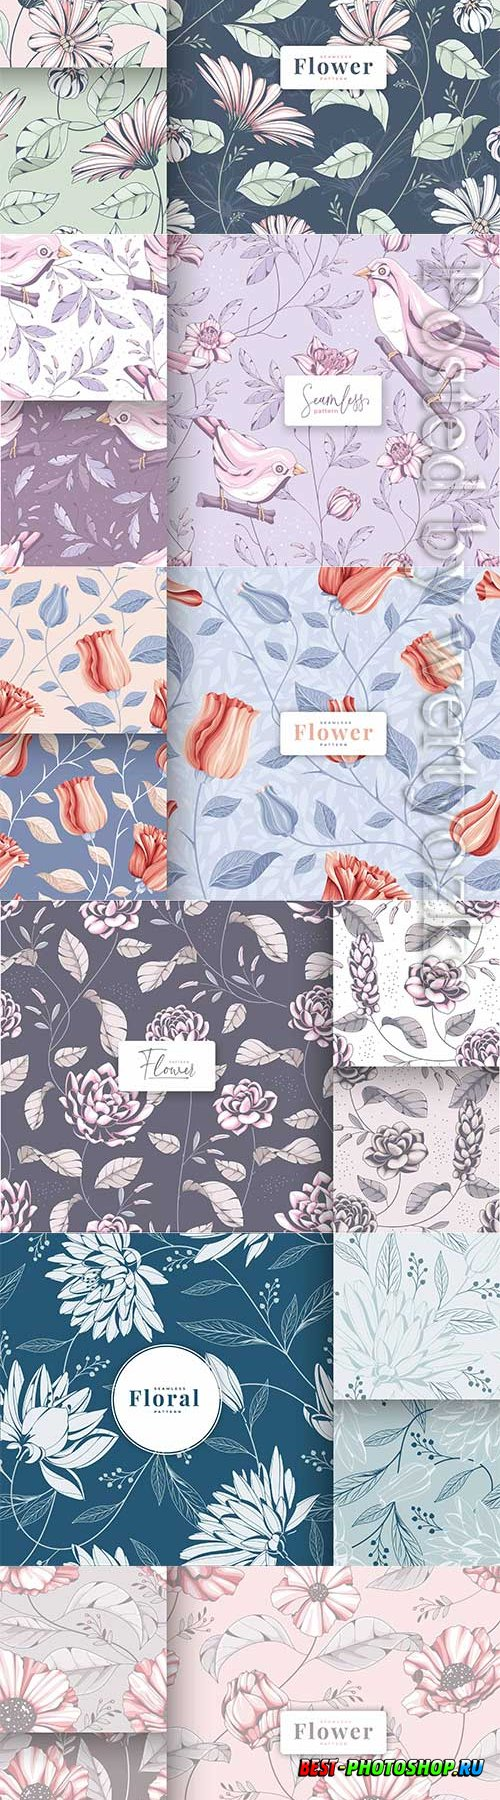 Vector hand drawn vintage floral seamless pattern